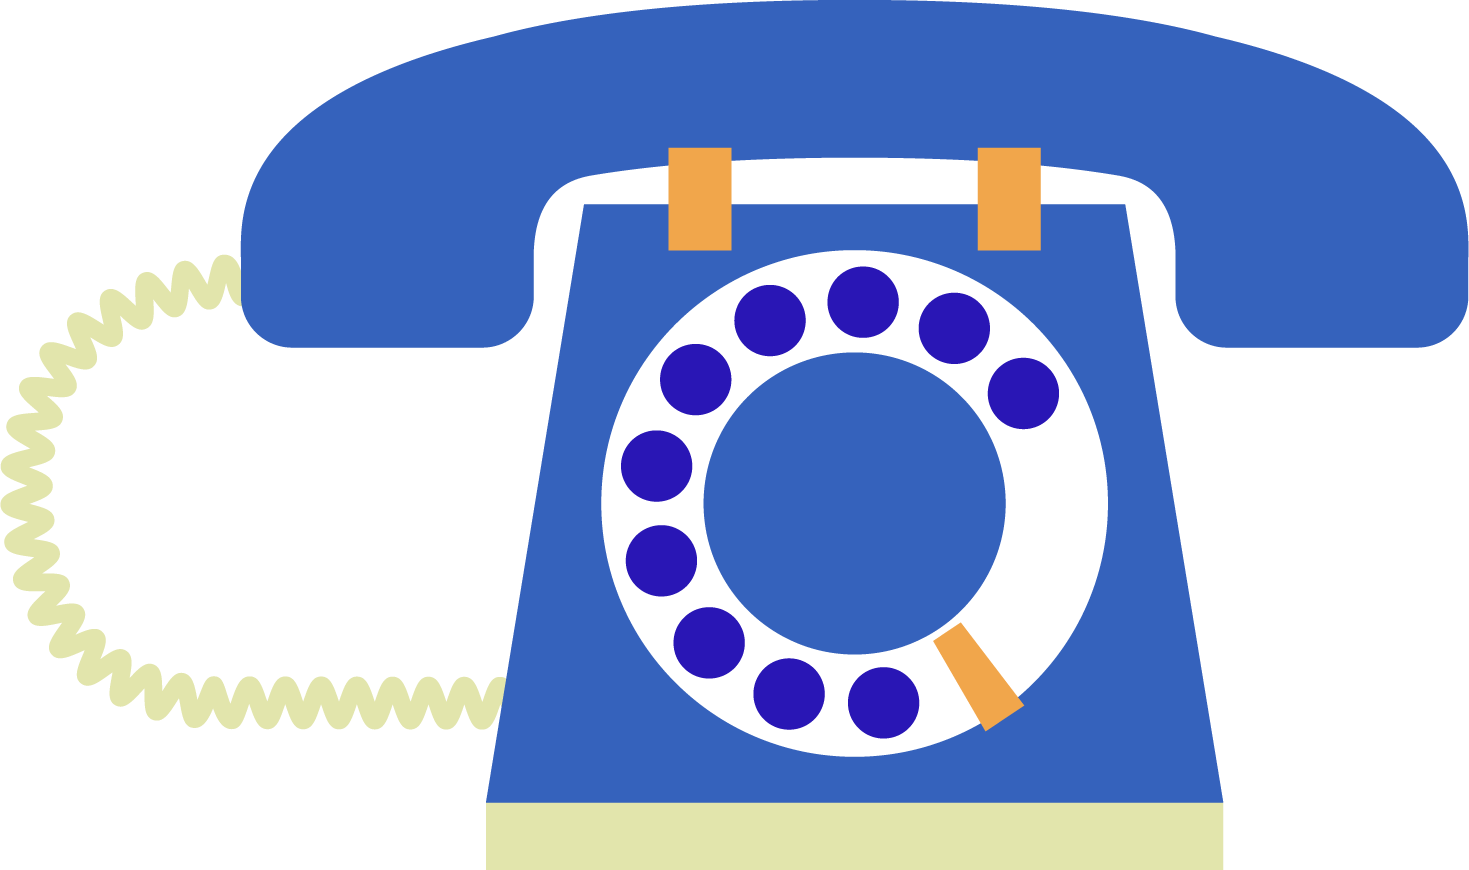 Telephone clipart teliphone. Png transparent free images